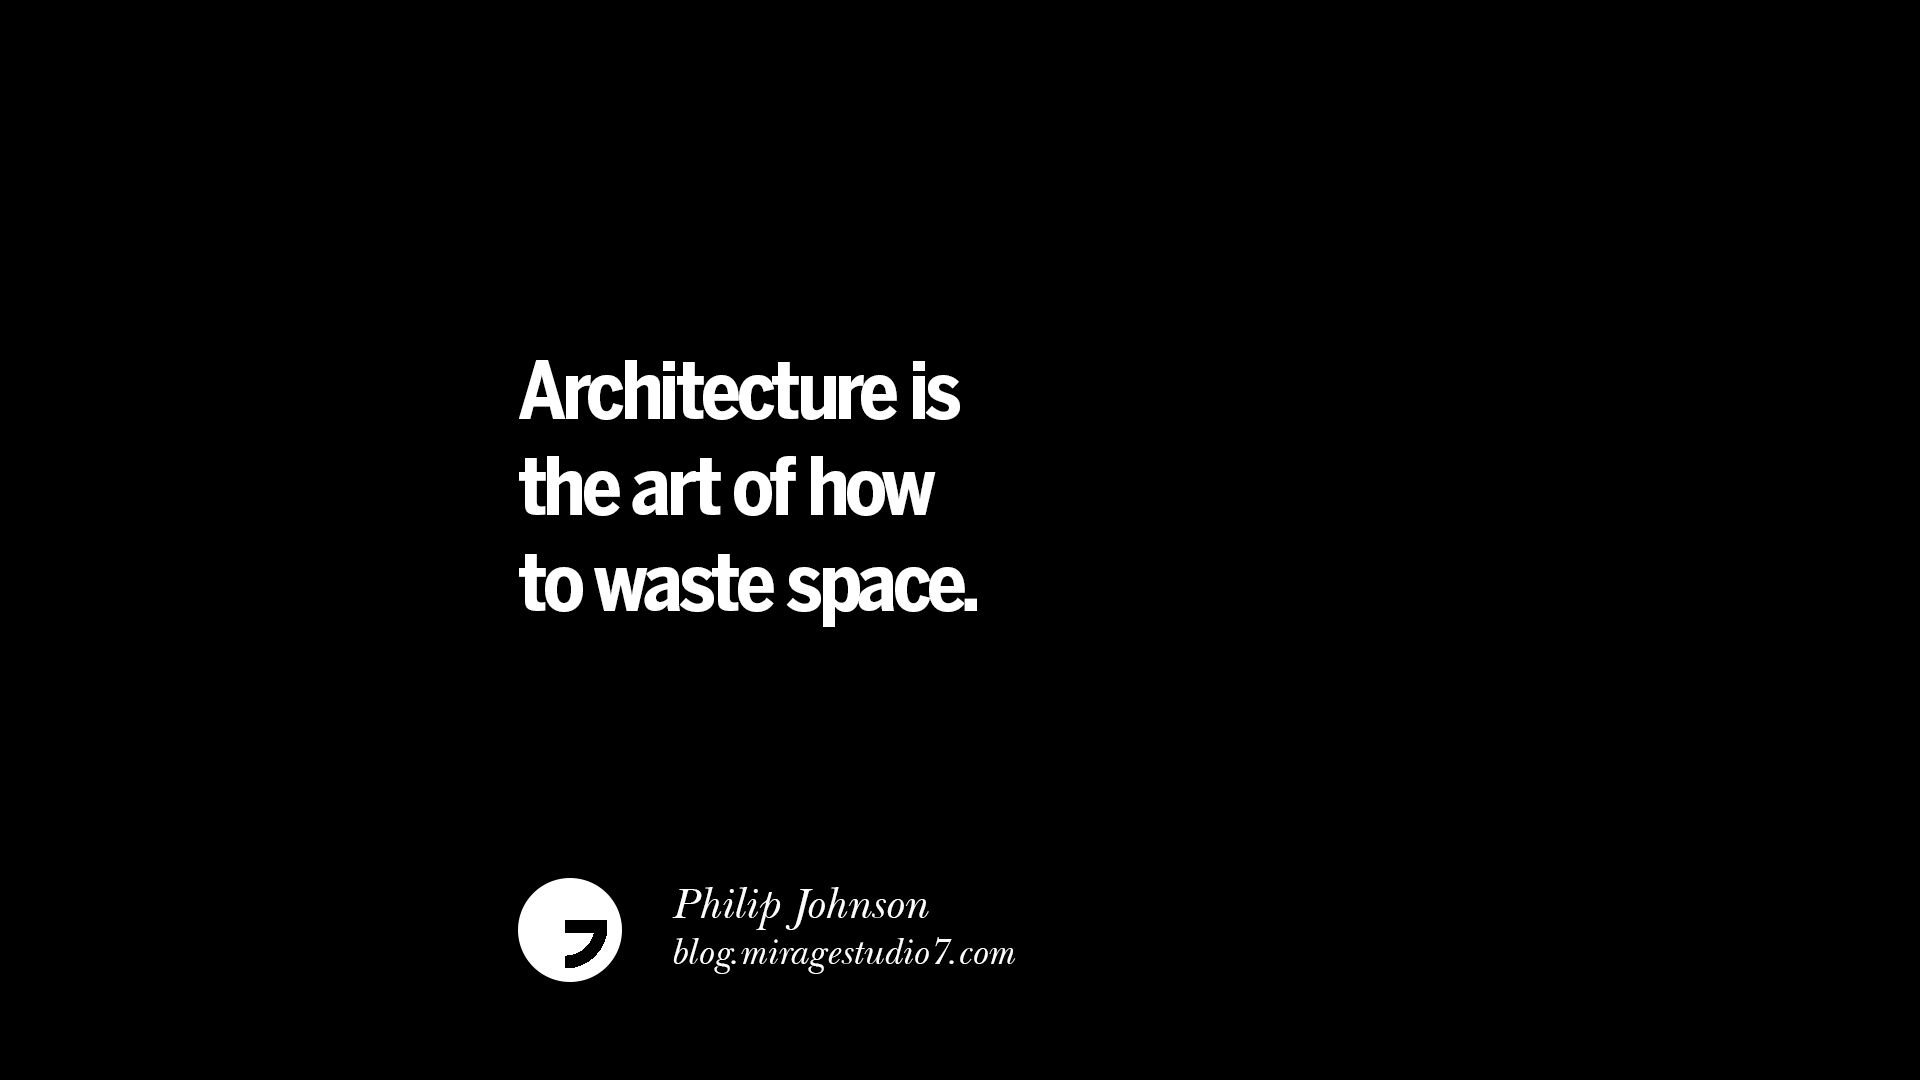 philip_johnson_2_quote